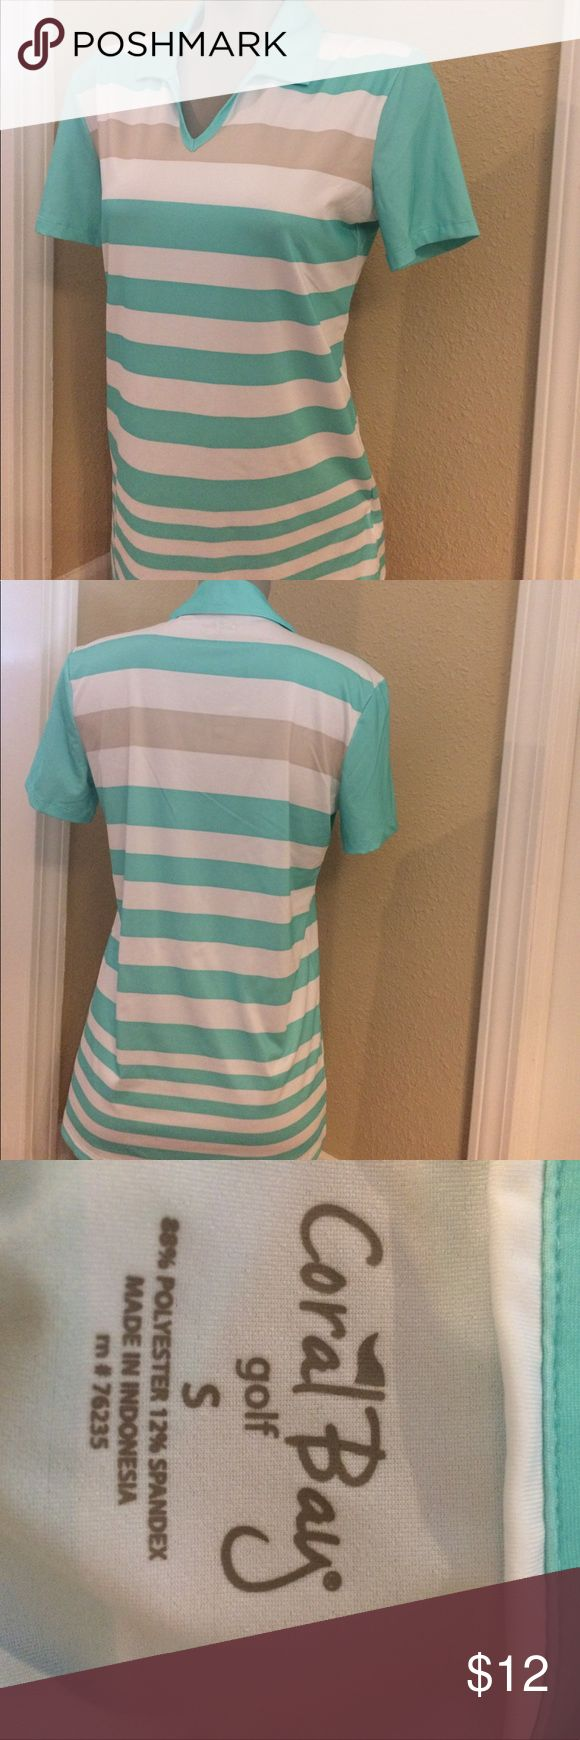 Coral Bay Women's golf shirt Womens golf V neck with collar.  Aqua, white and beige. Worn once coral bay Tops